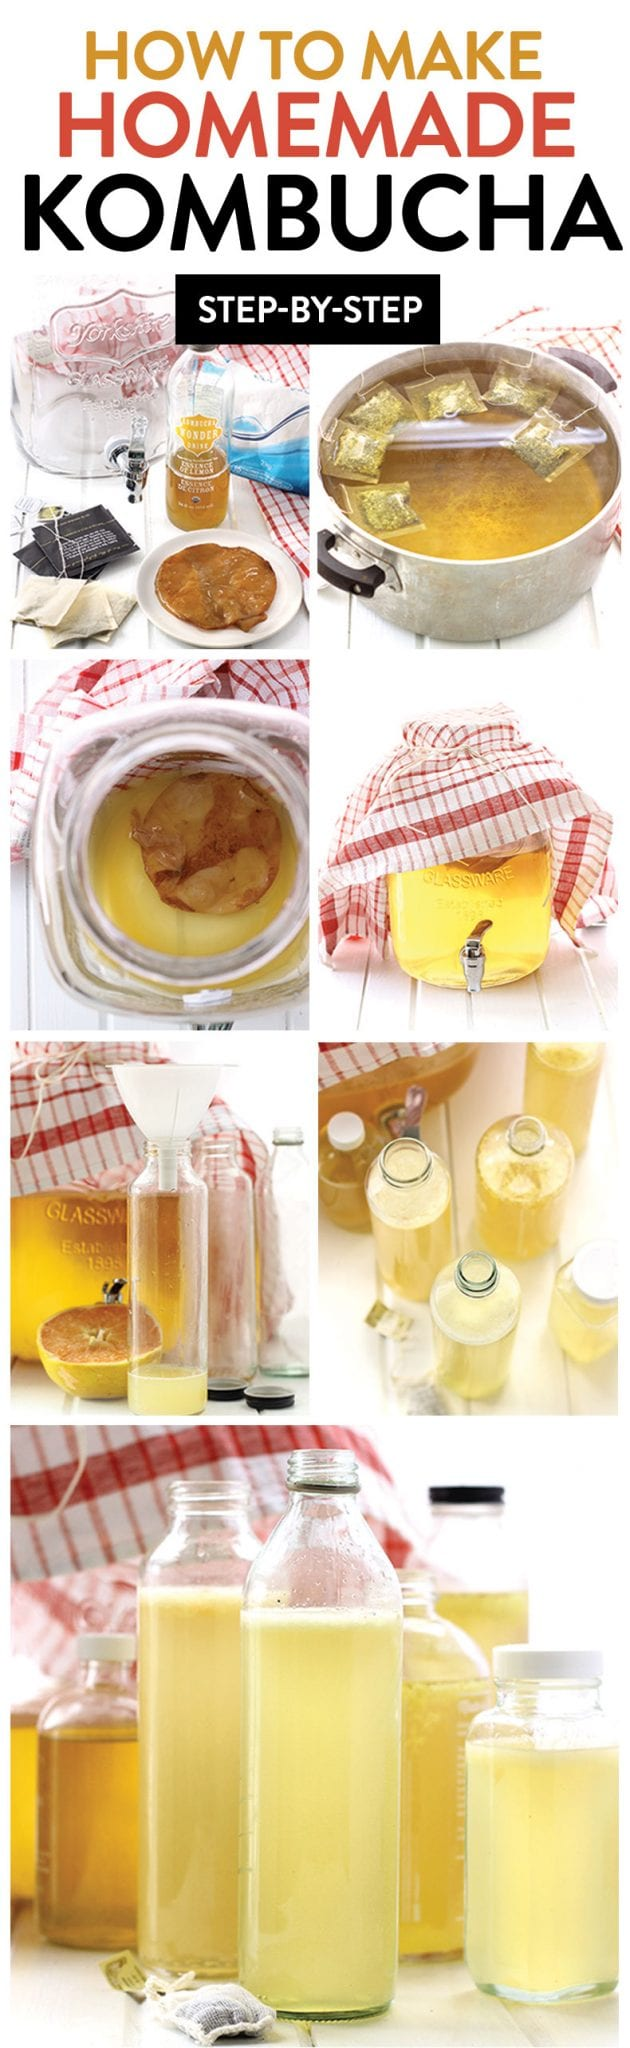 Learn how to make kombucha with this step-by-step tutorial teaching you how to make your own kombucha recipe - two variations included! #howto #kombucha